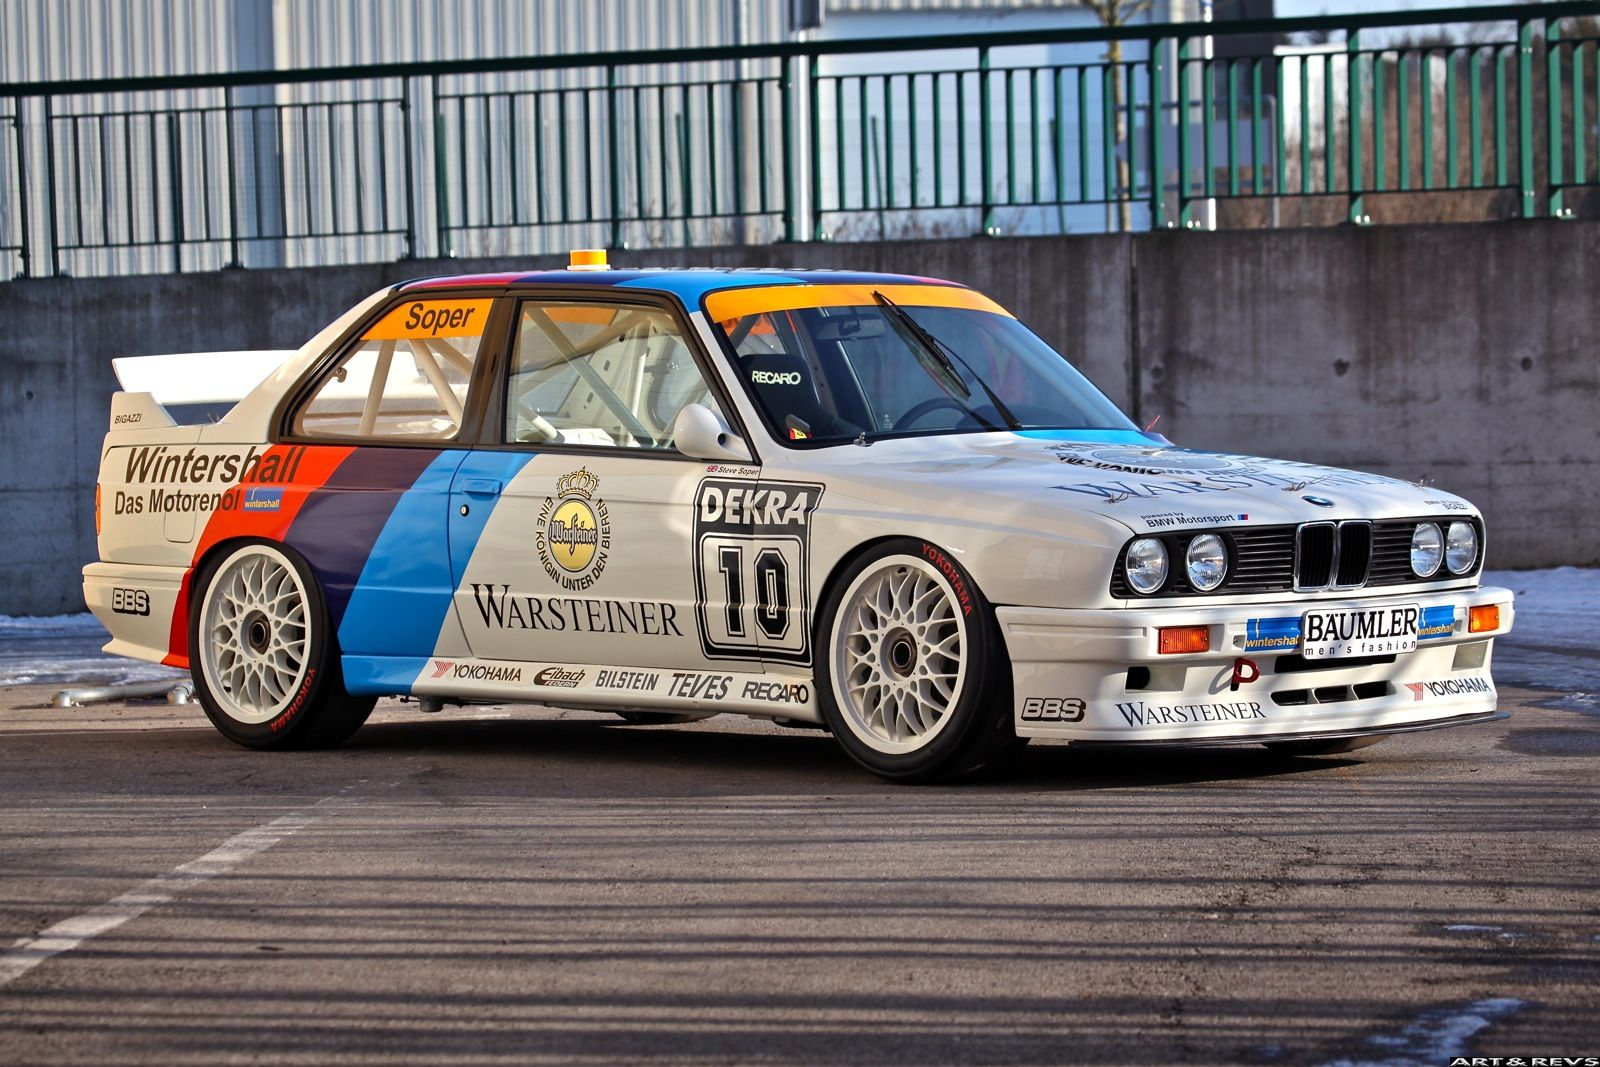 15 Iconic Race Cars That Will Get You Feeling Nostalgic